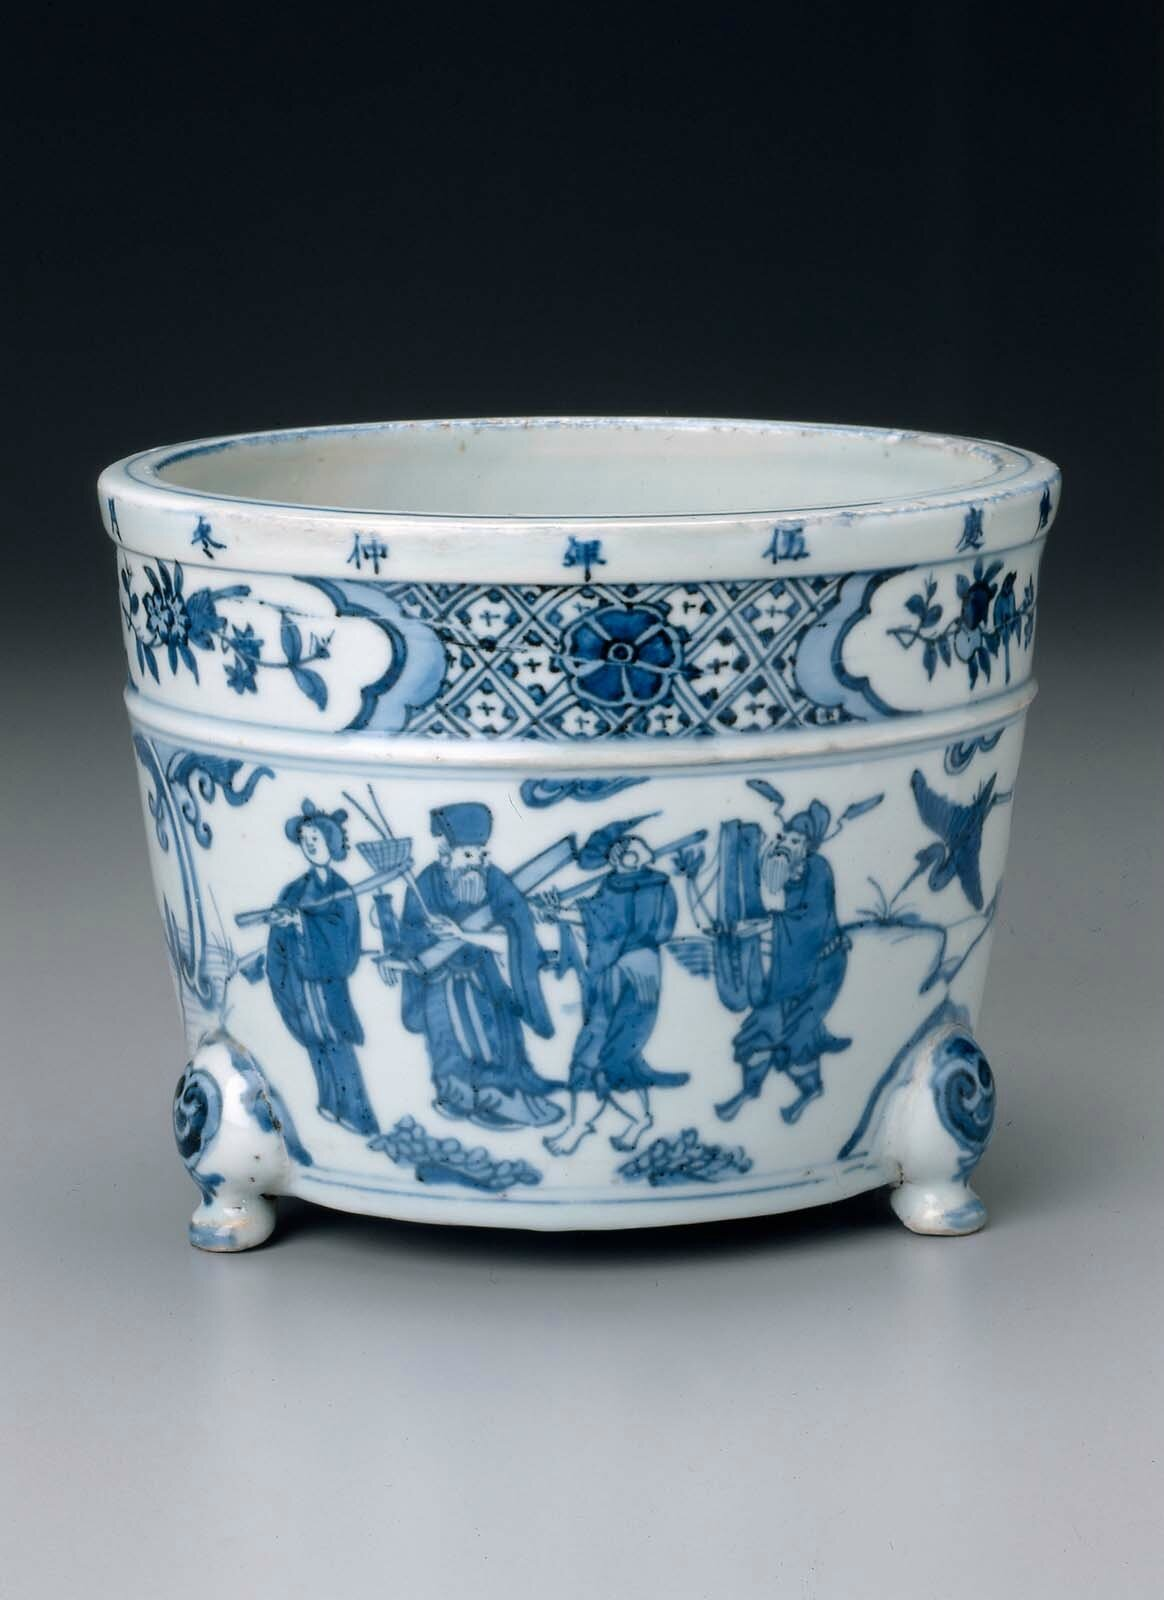 Incense burner with decoration of the Eight Immortals venerating the god of longevity, Ming dynasty, Longqing period, dated 1571